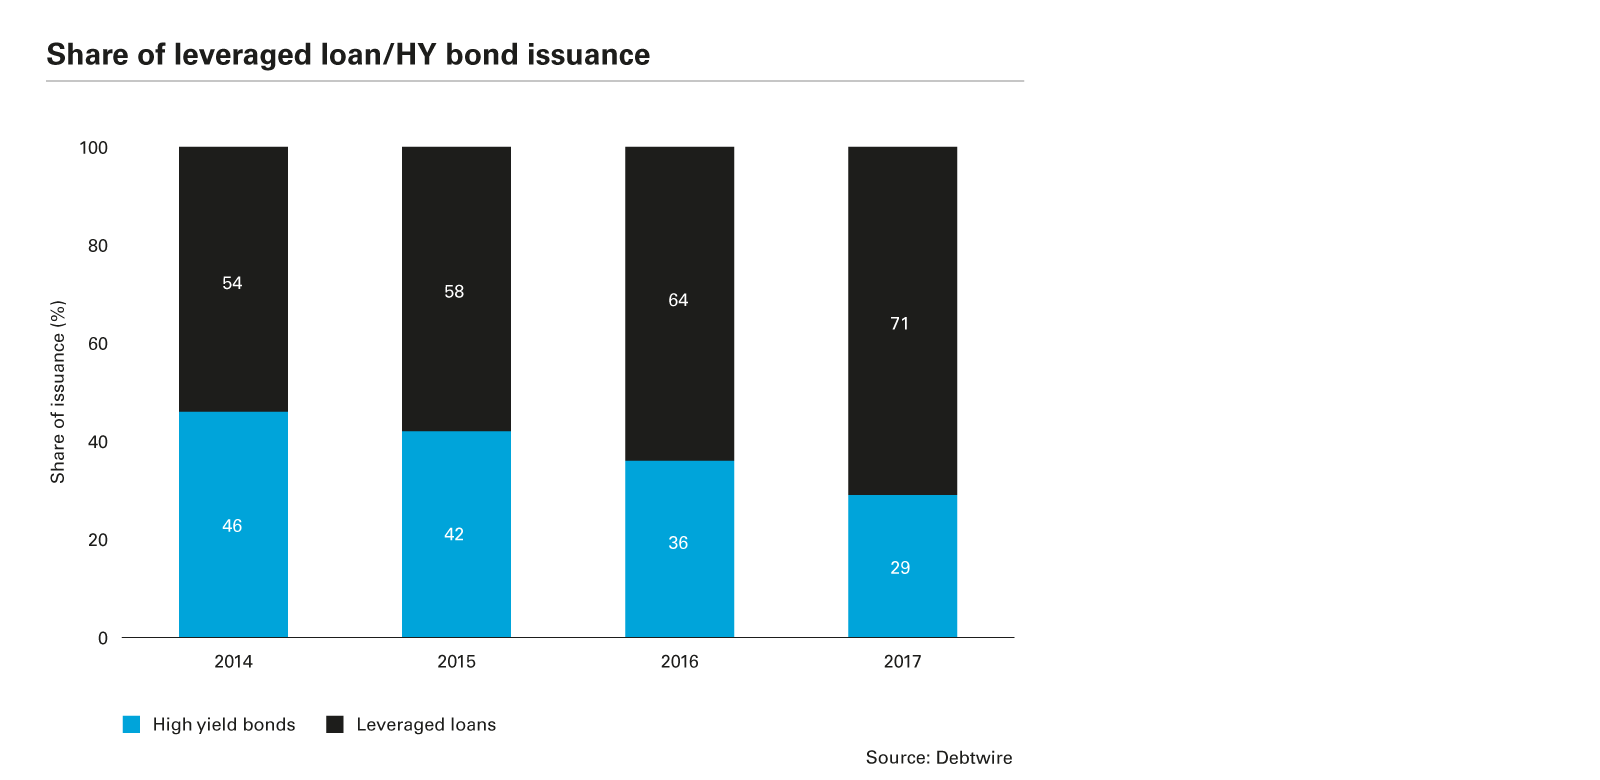 Share of leveraged loan/HY bond issuance